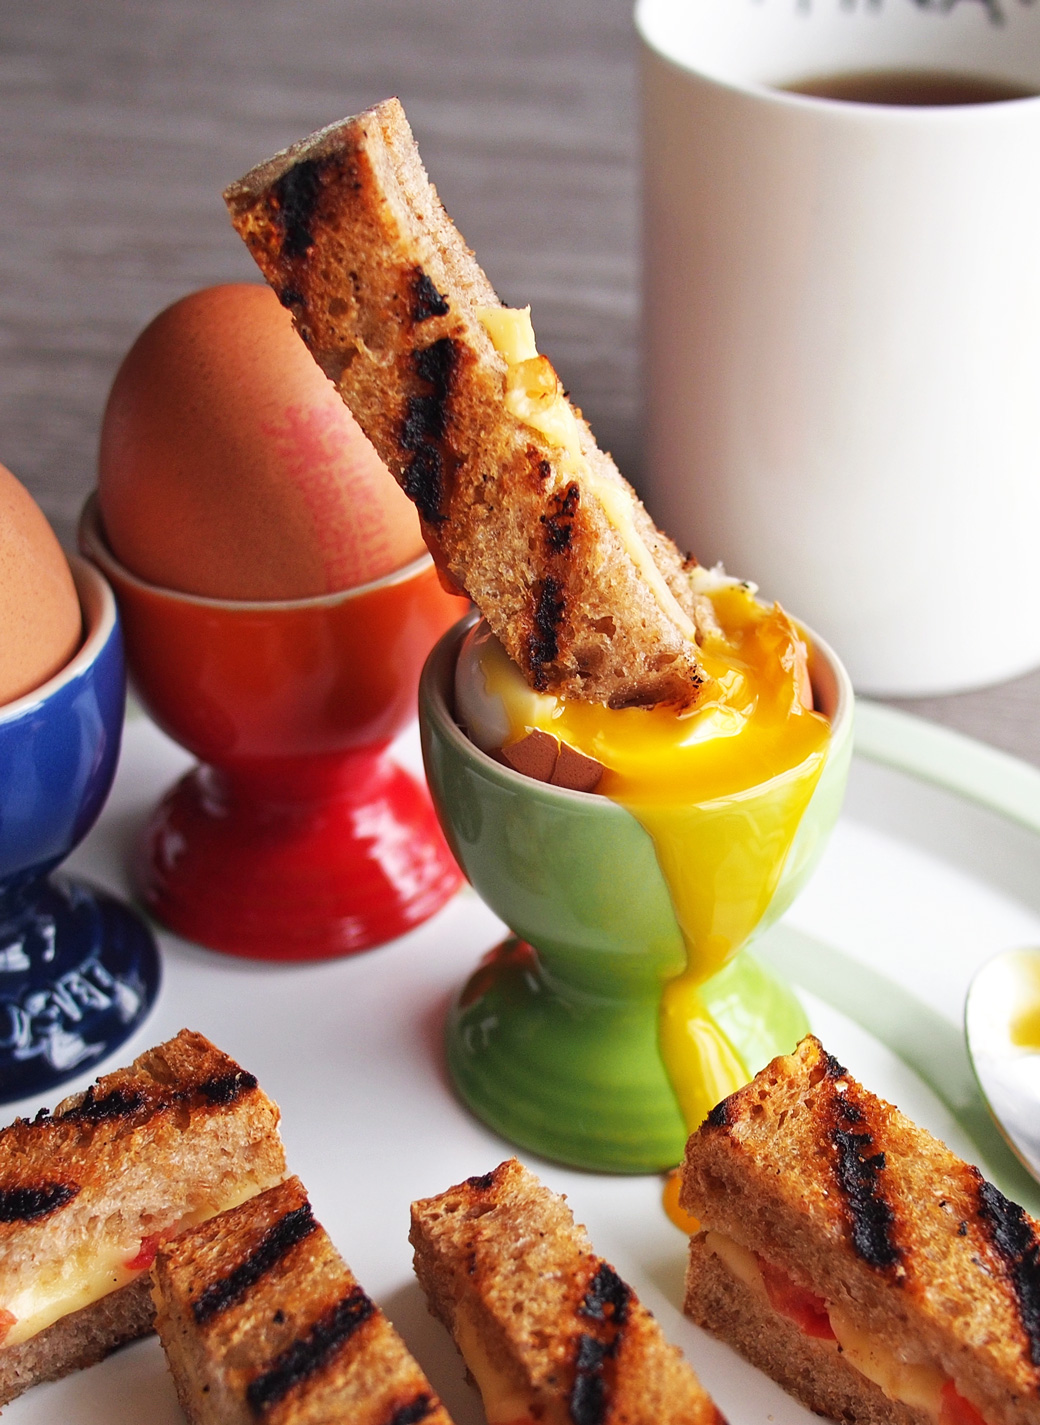 Dippy Eggs and Grilled Cheese Soldiers For Family Easter Brunch